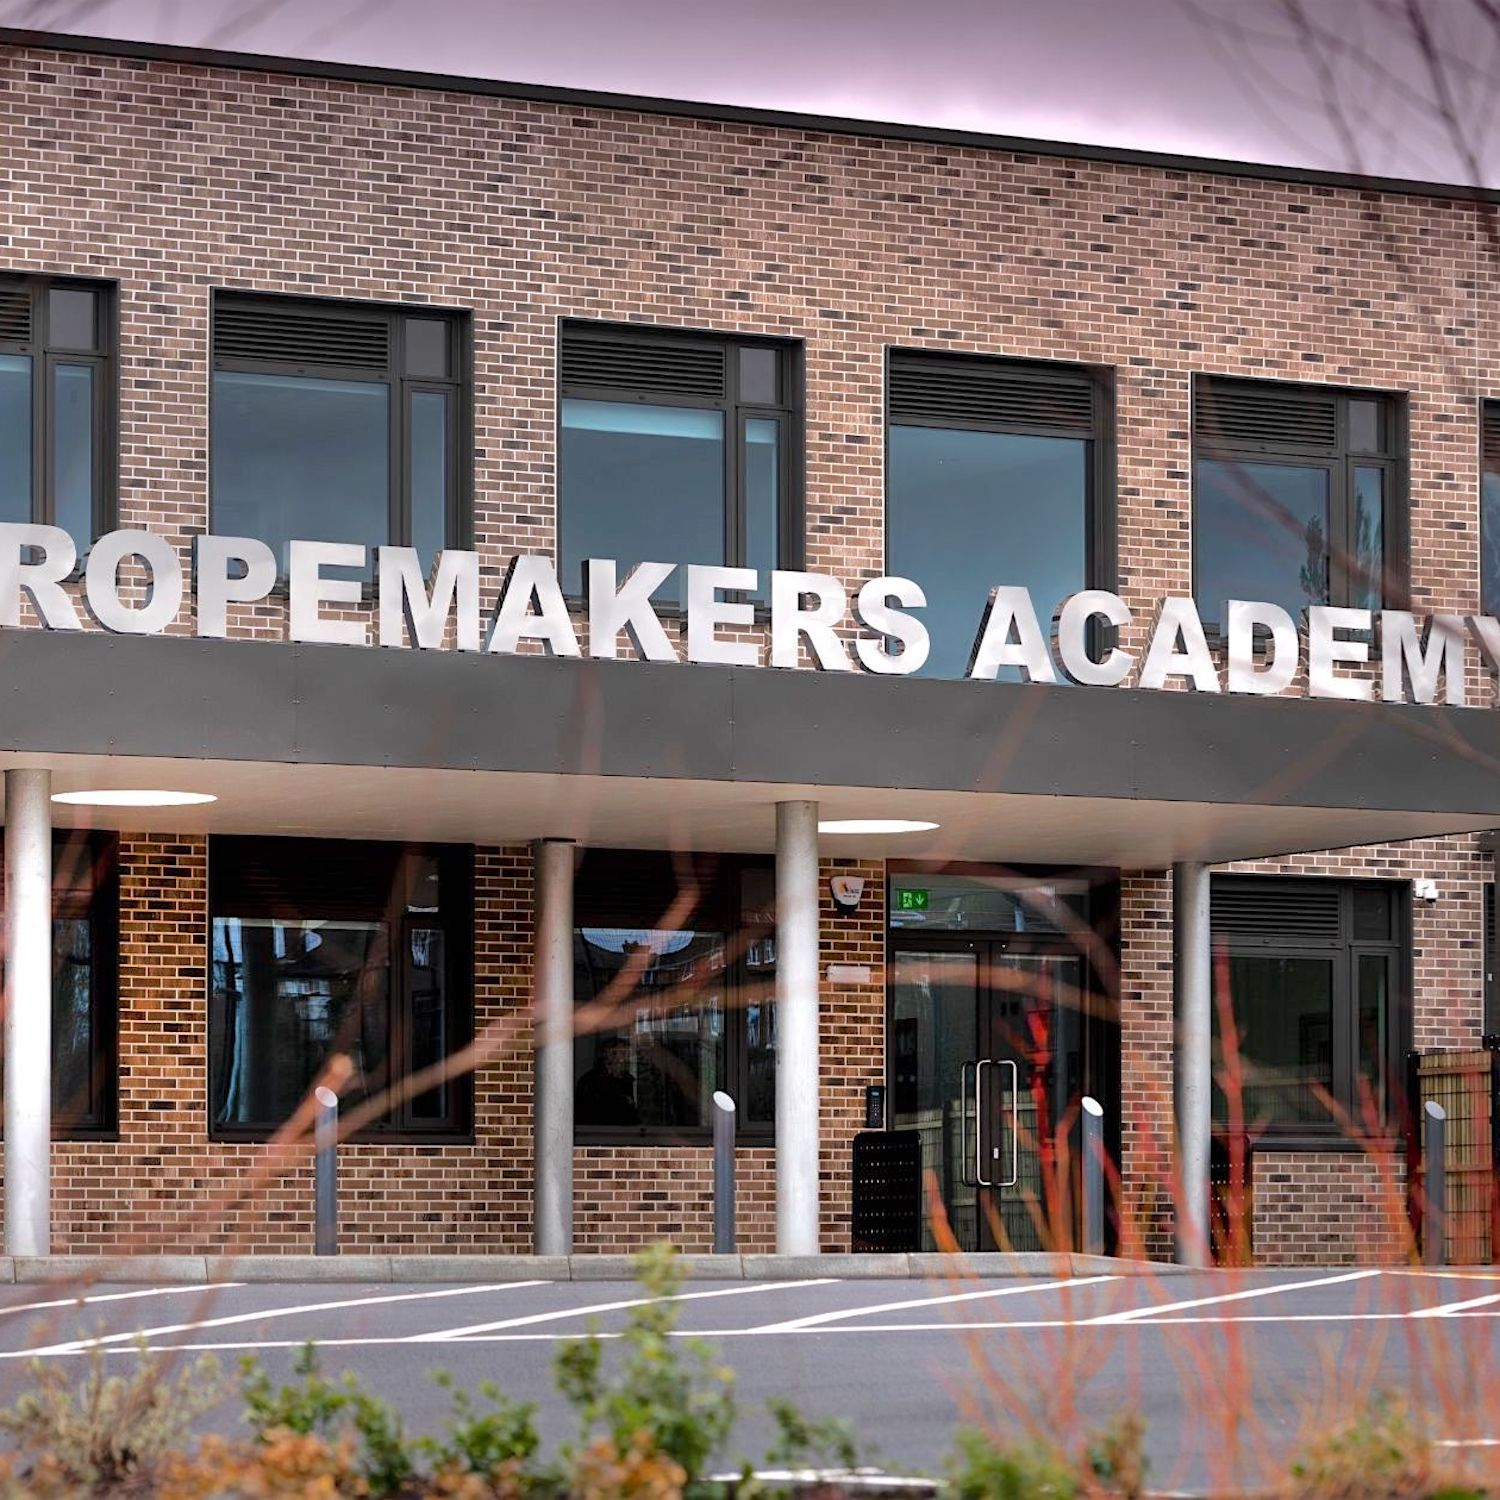 The Ropemakers Academy, Hailsham